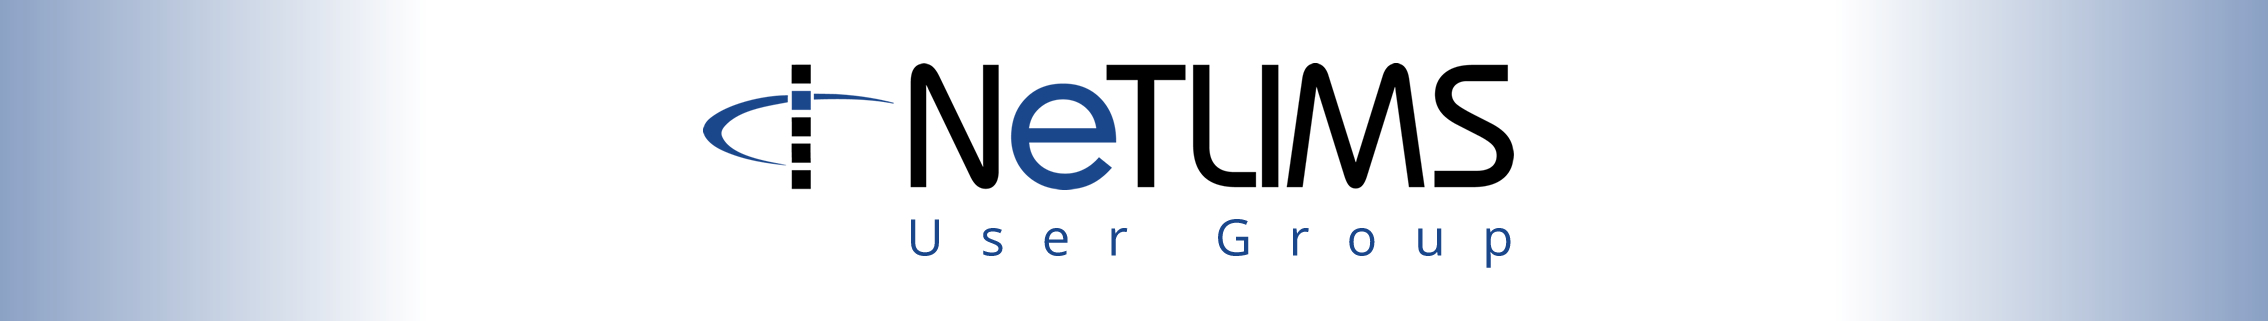 Netlims user group banner